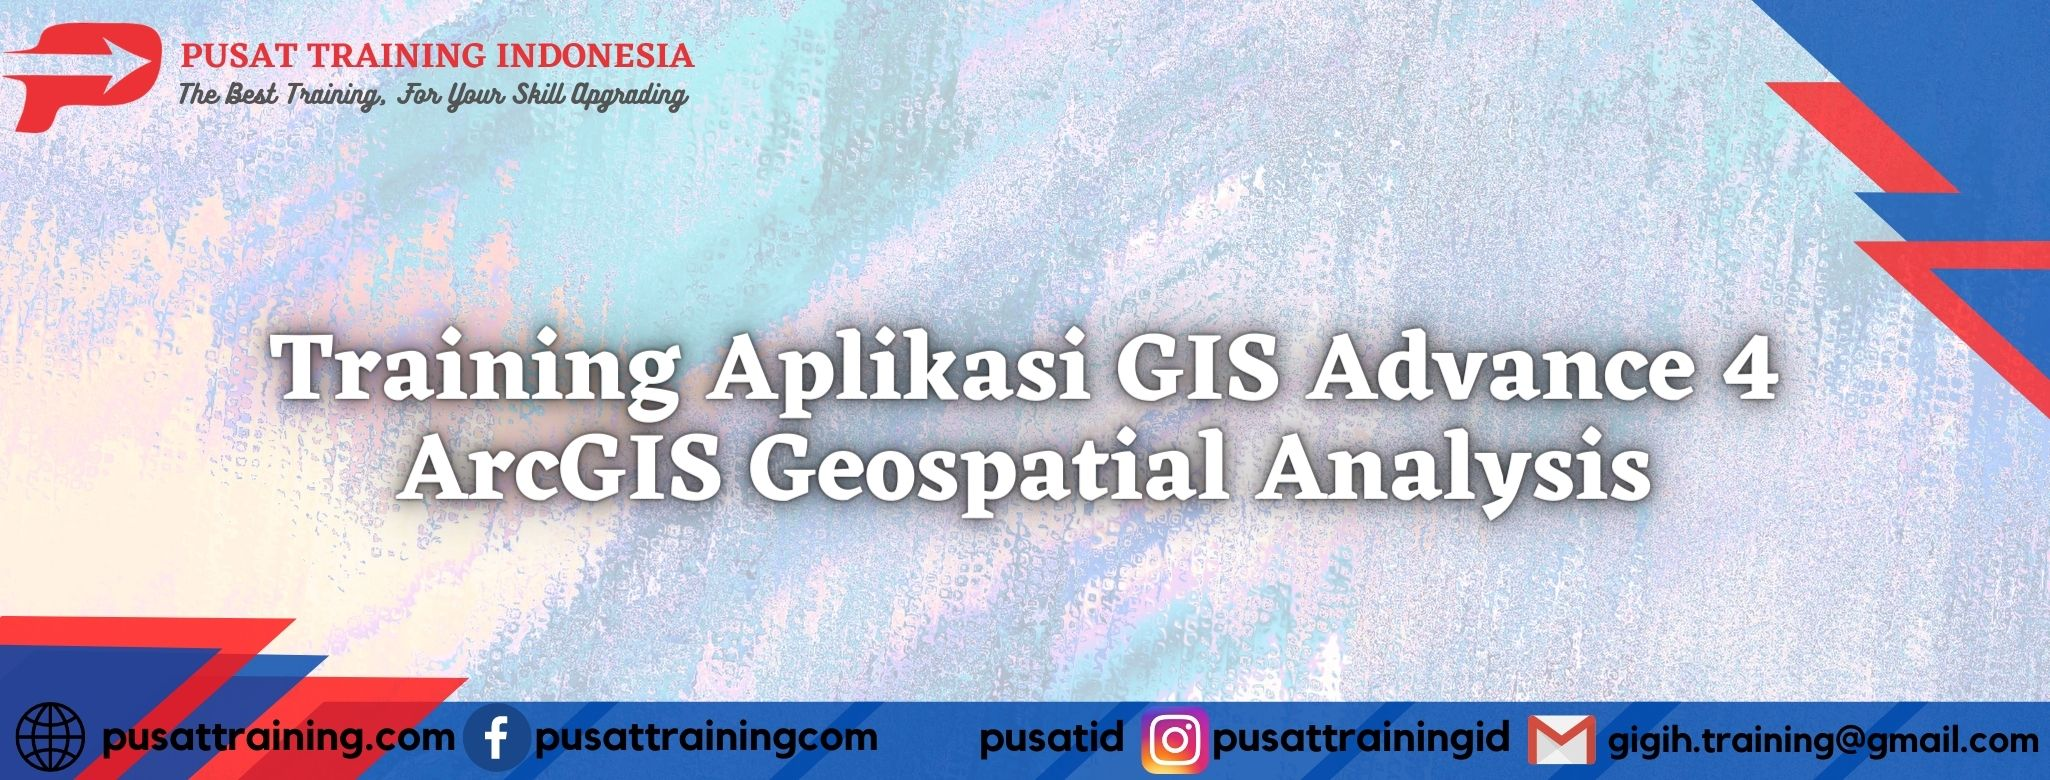 Training-Aplikasi-GIS-Advance-4-ArcGIS-Geospatial-Analysis